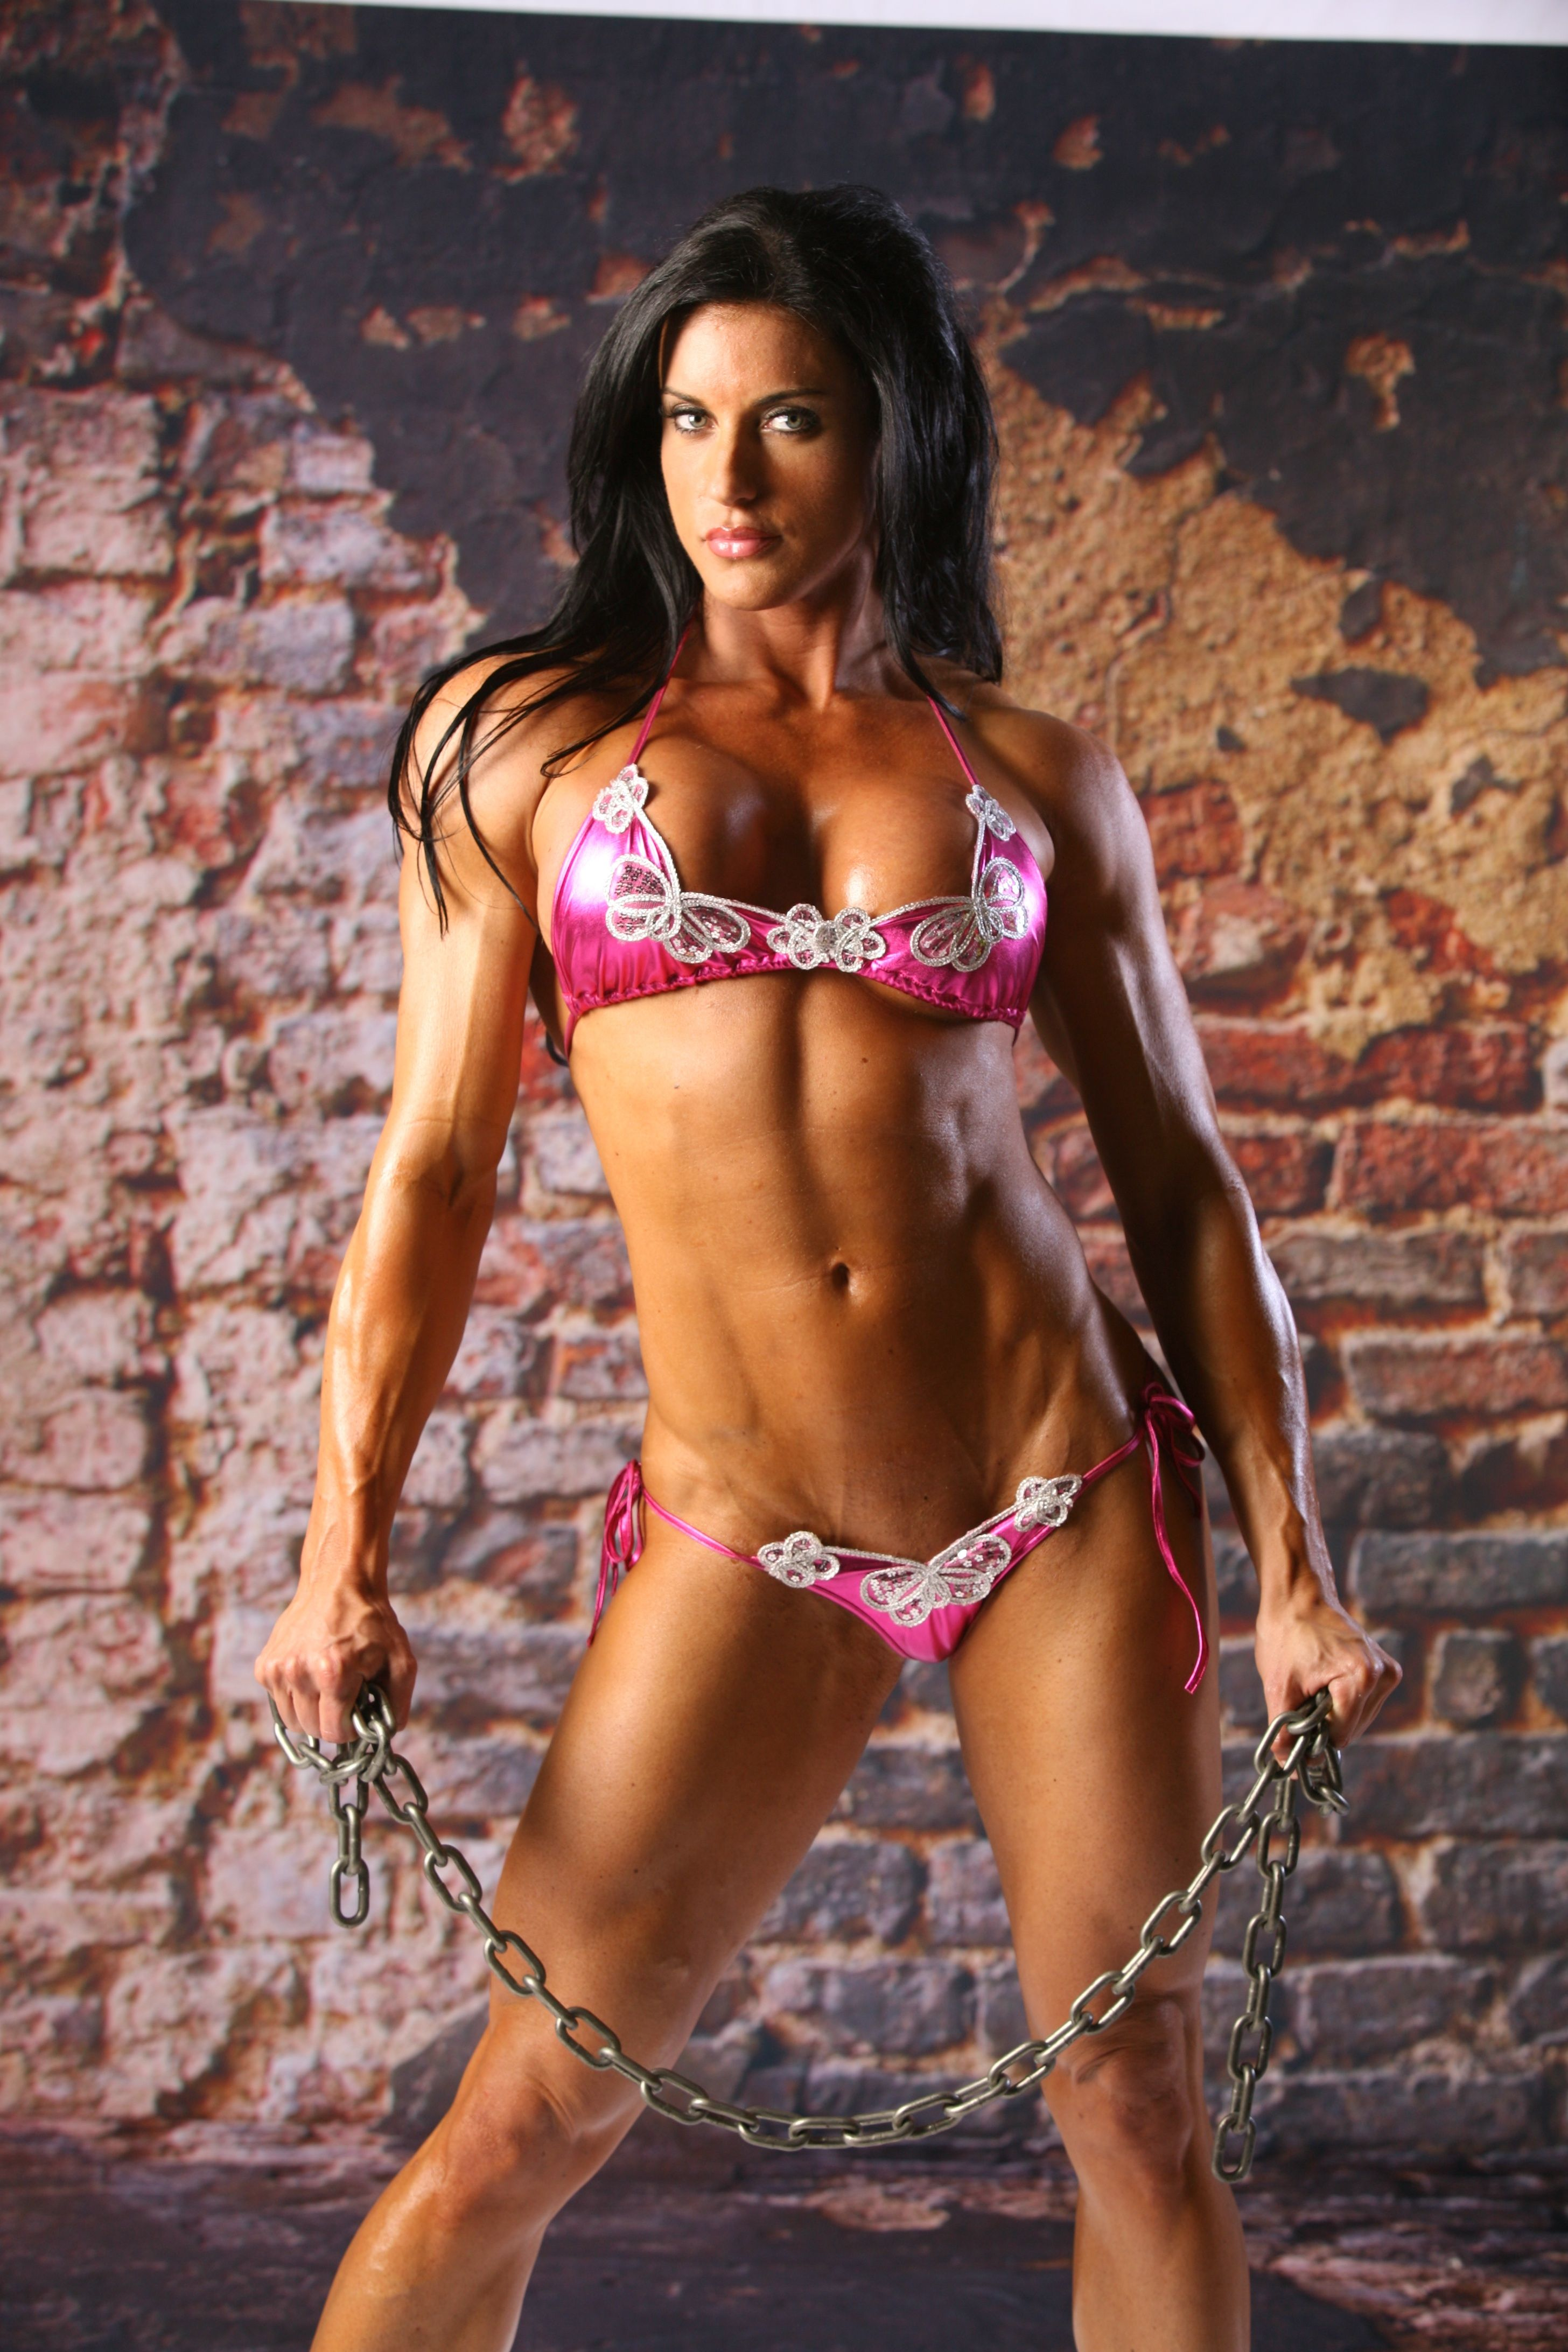 Muscle fitness babes pics, amateur boob busty